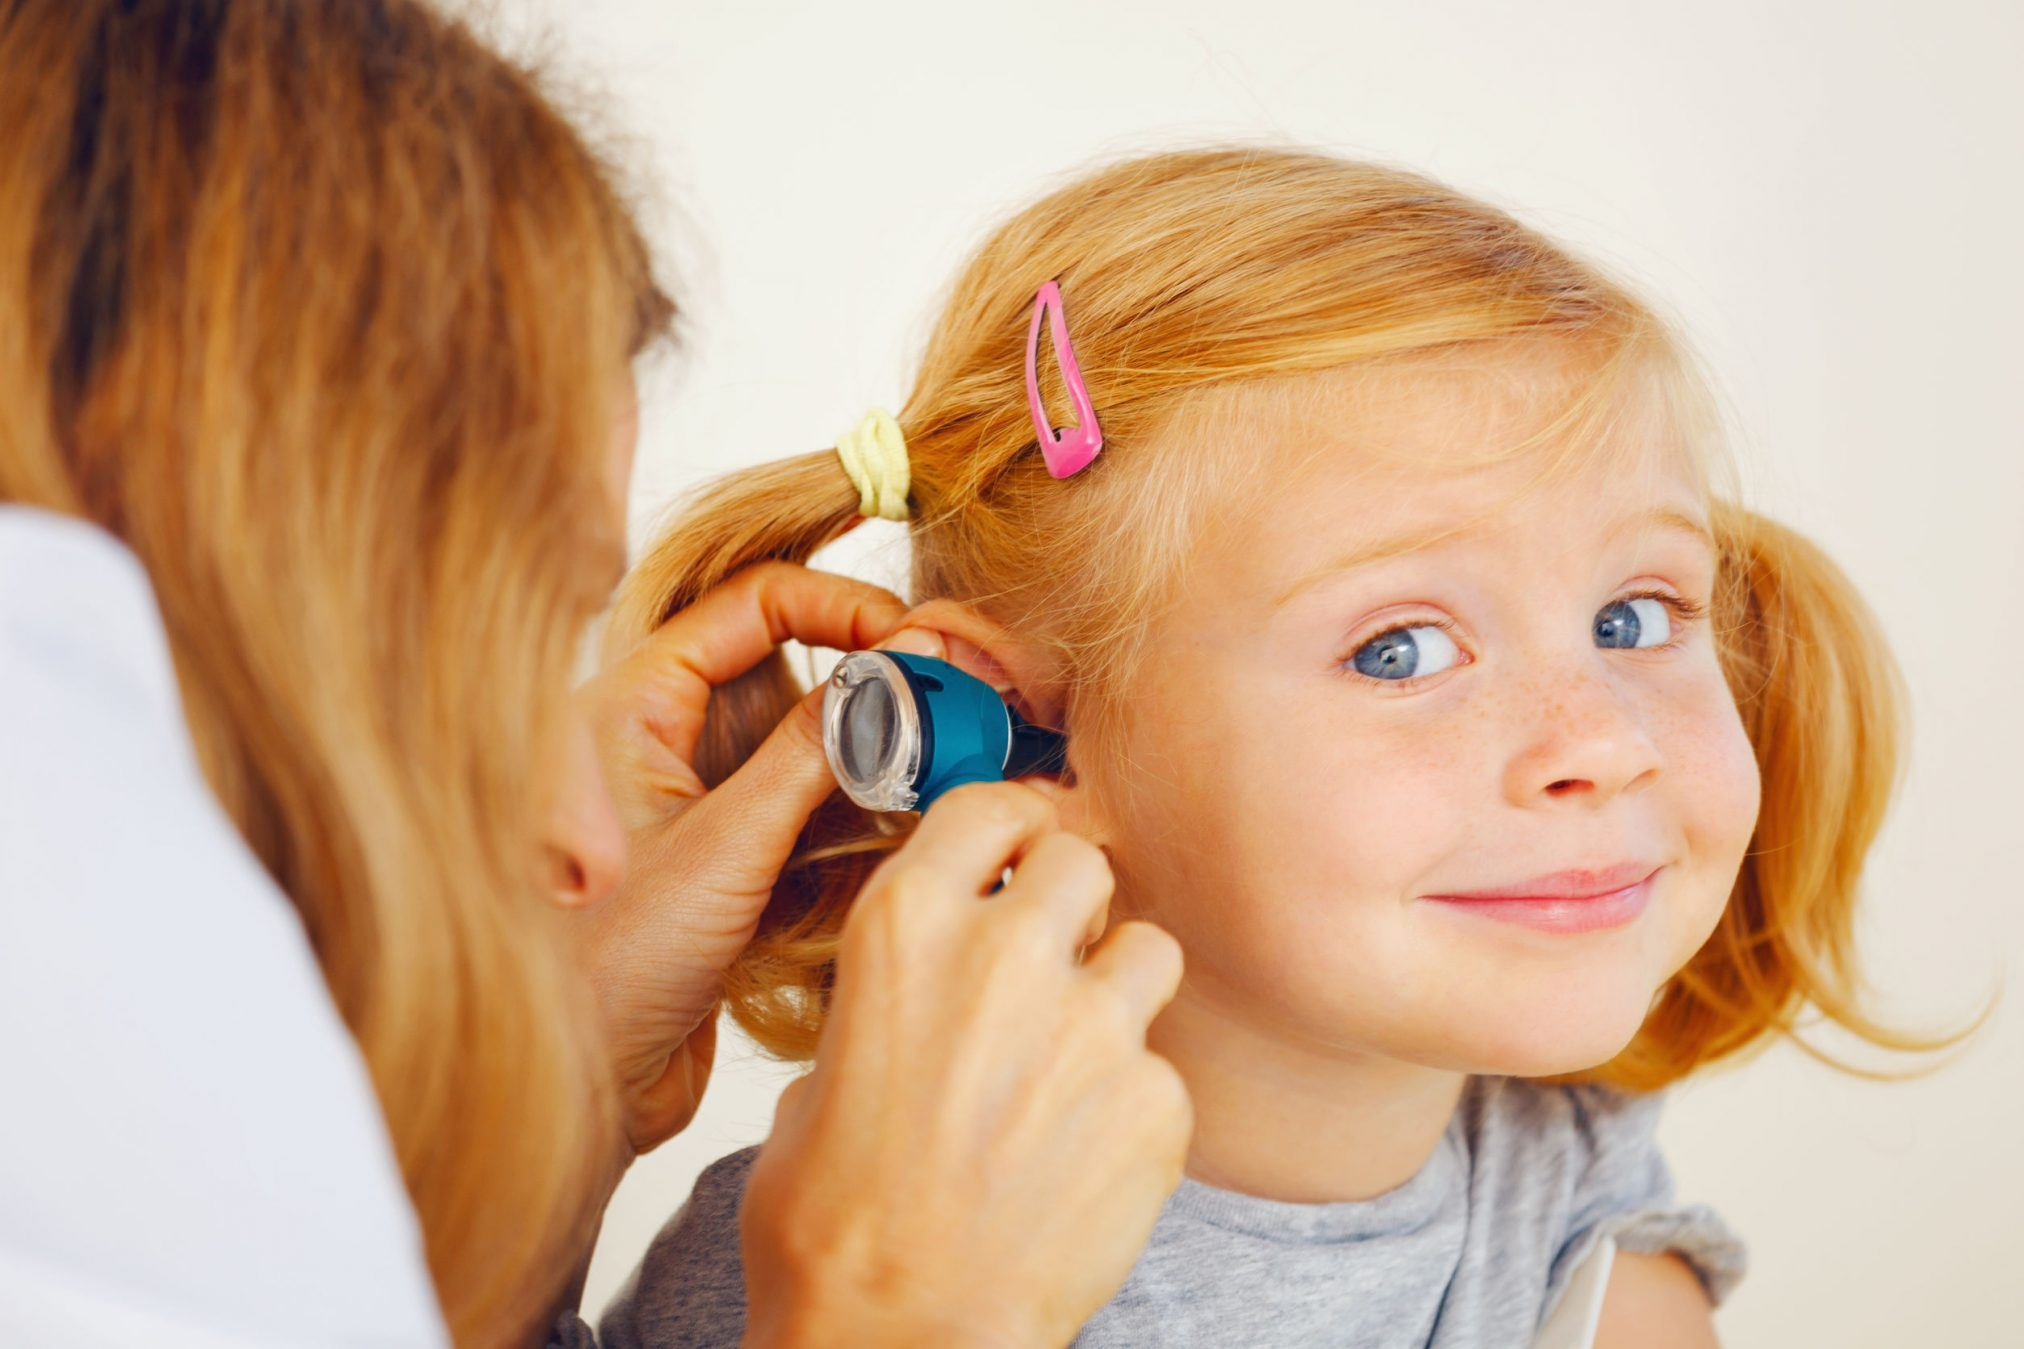 health professional checking out little girl's ear